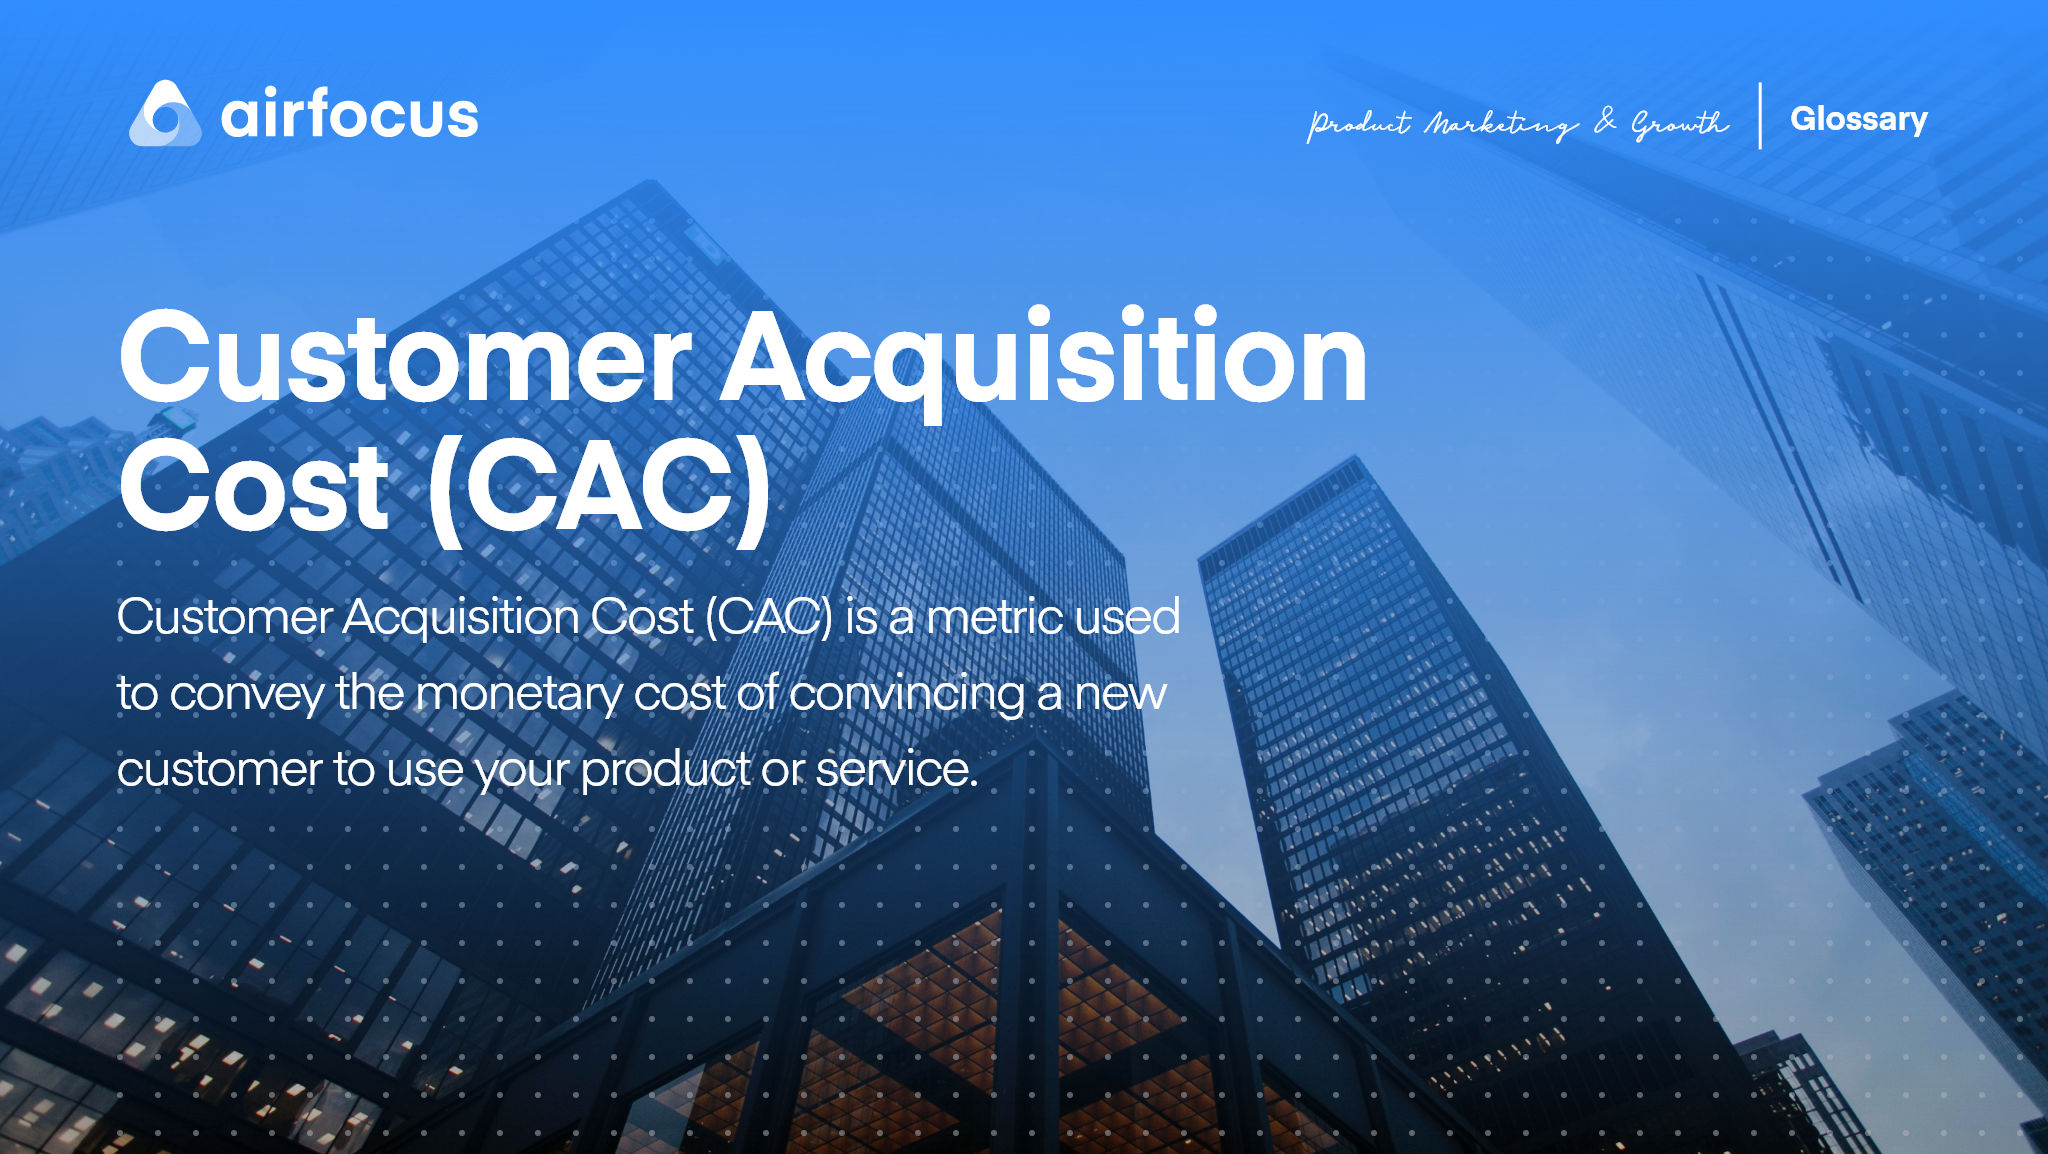 What Is Customer Acquisition Cost (CAC)